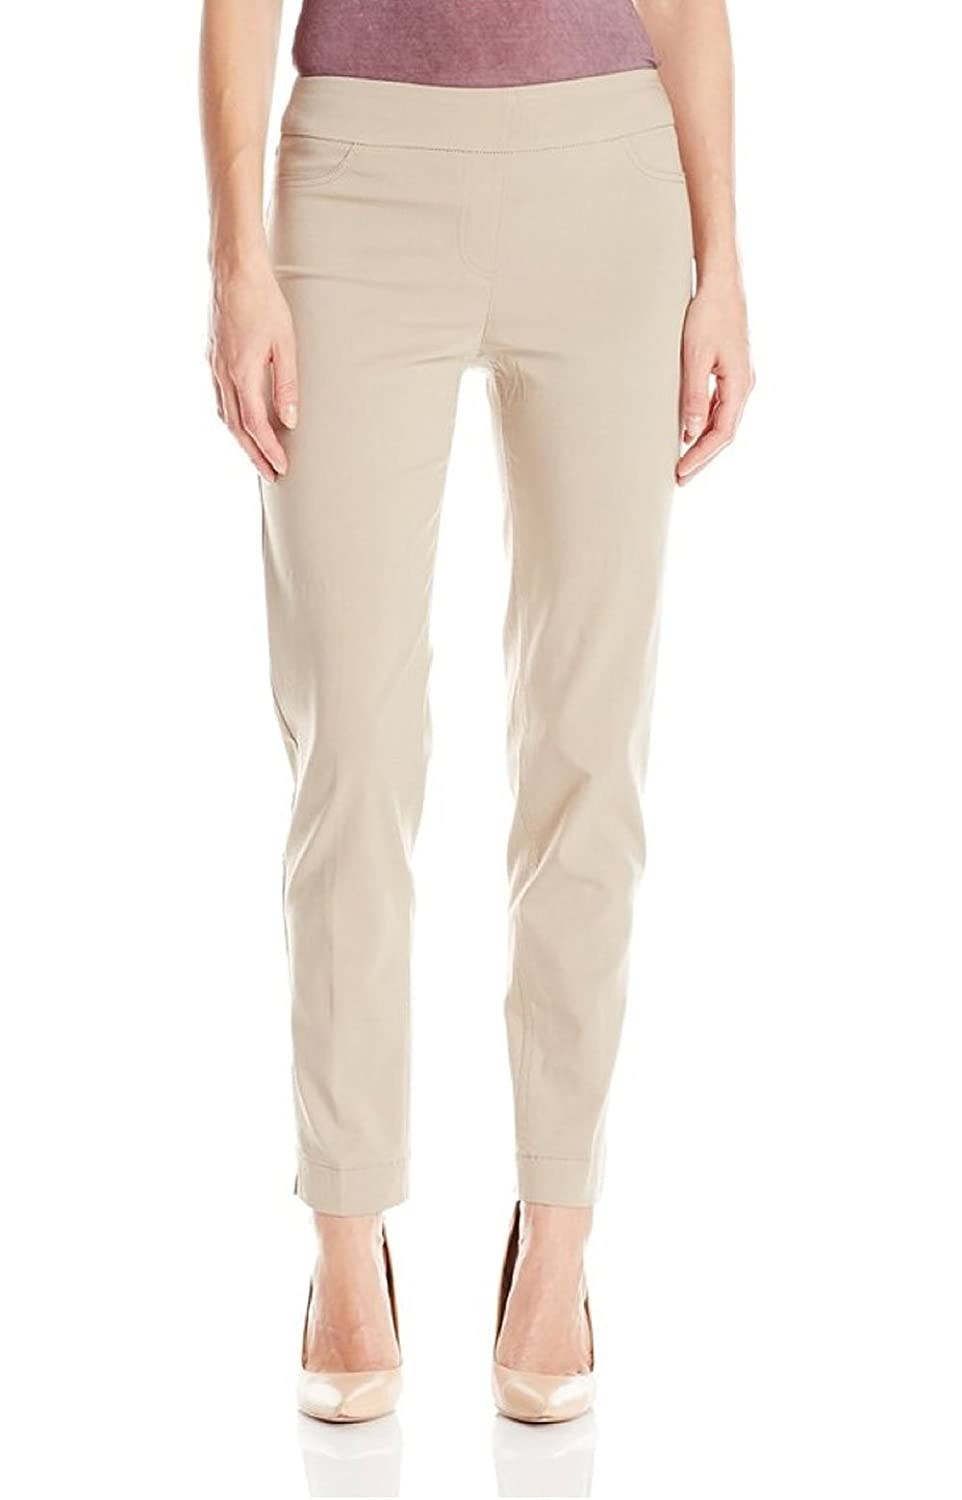 Multiples Women's Stone Pull On Solid Ankle Pants